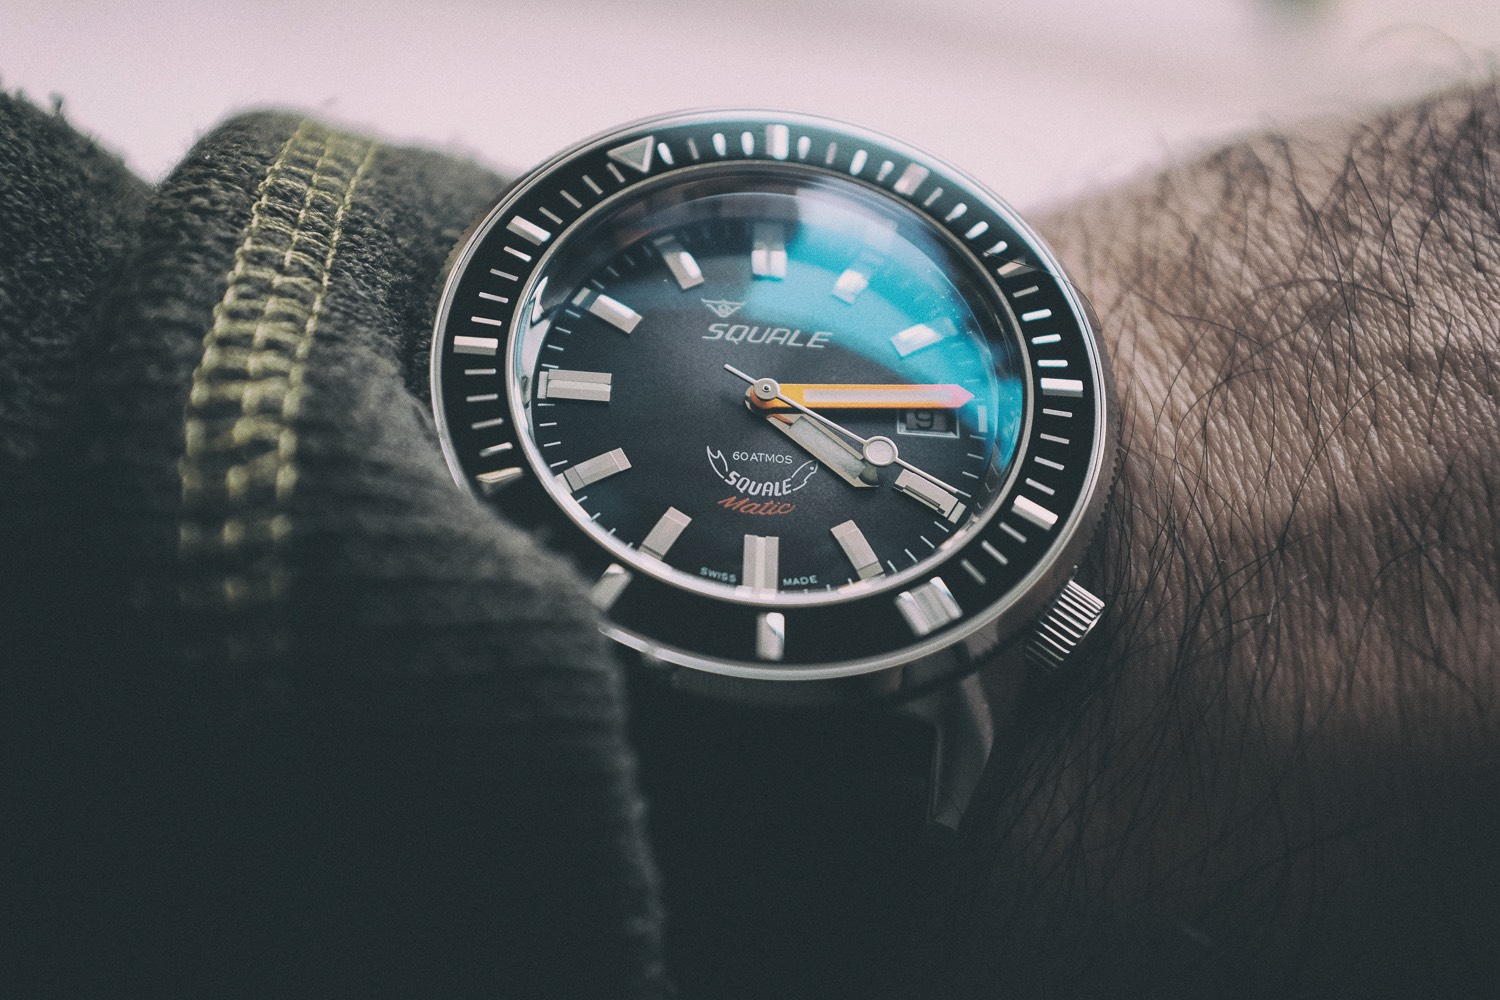 bracelet tropic watches gmt atmos sel ceramica squale